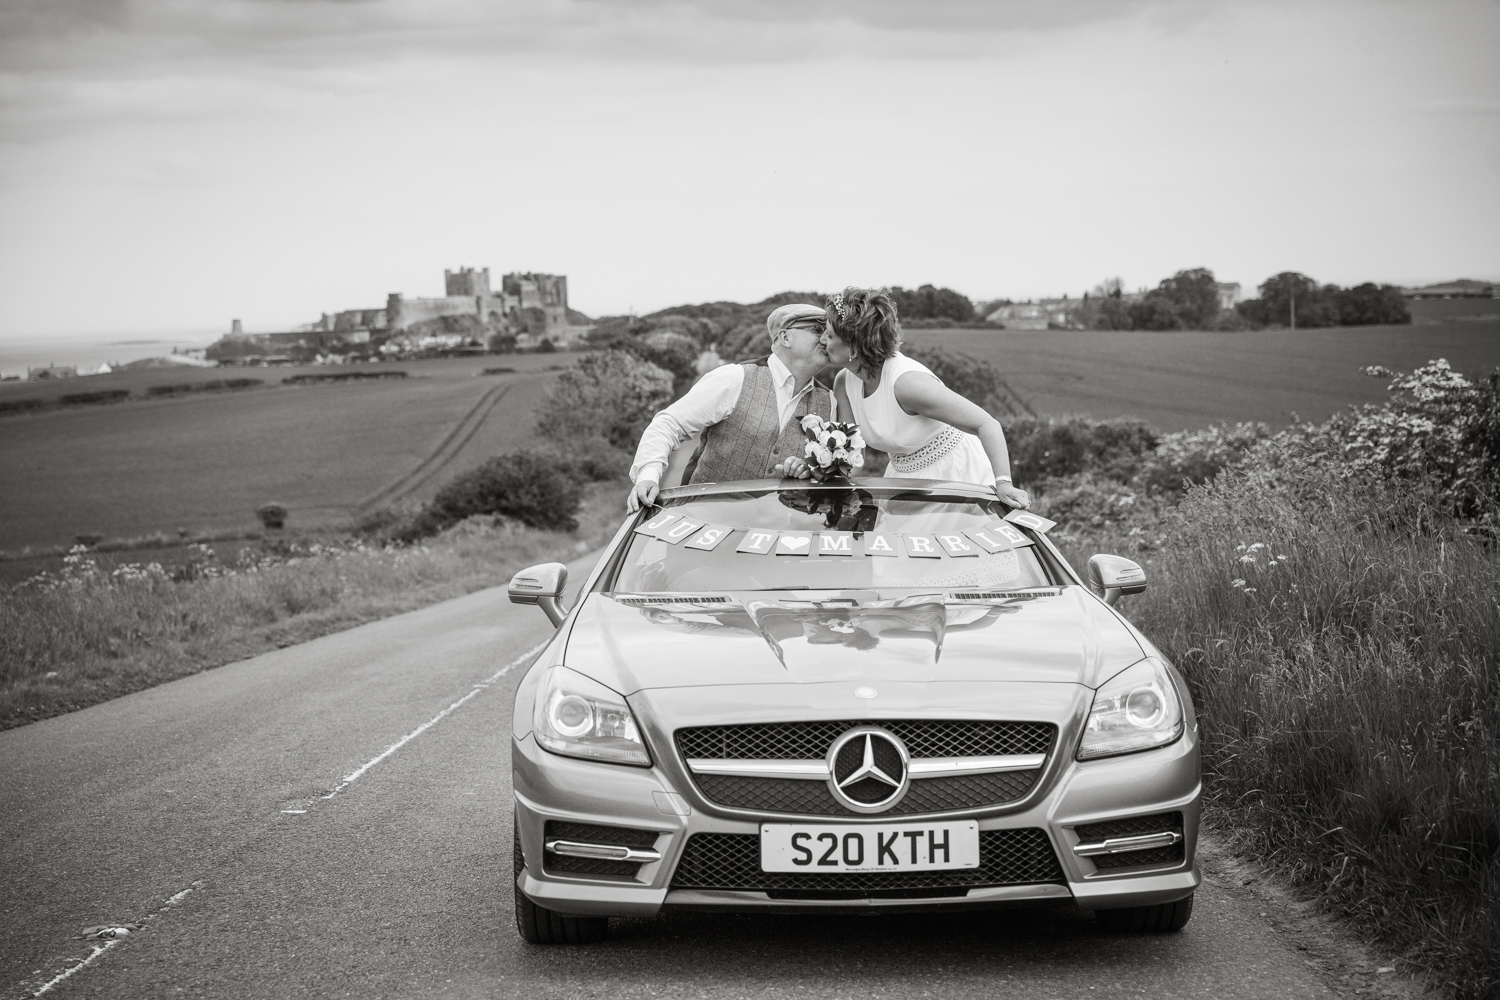 wedding-bamburgh-pictorial-elopement-friends-beach-0946.jpg